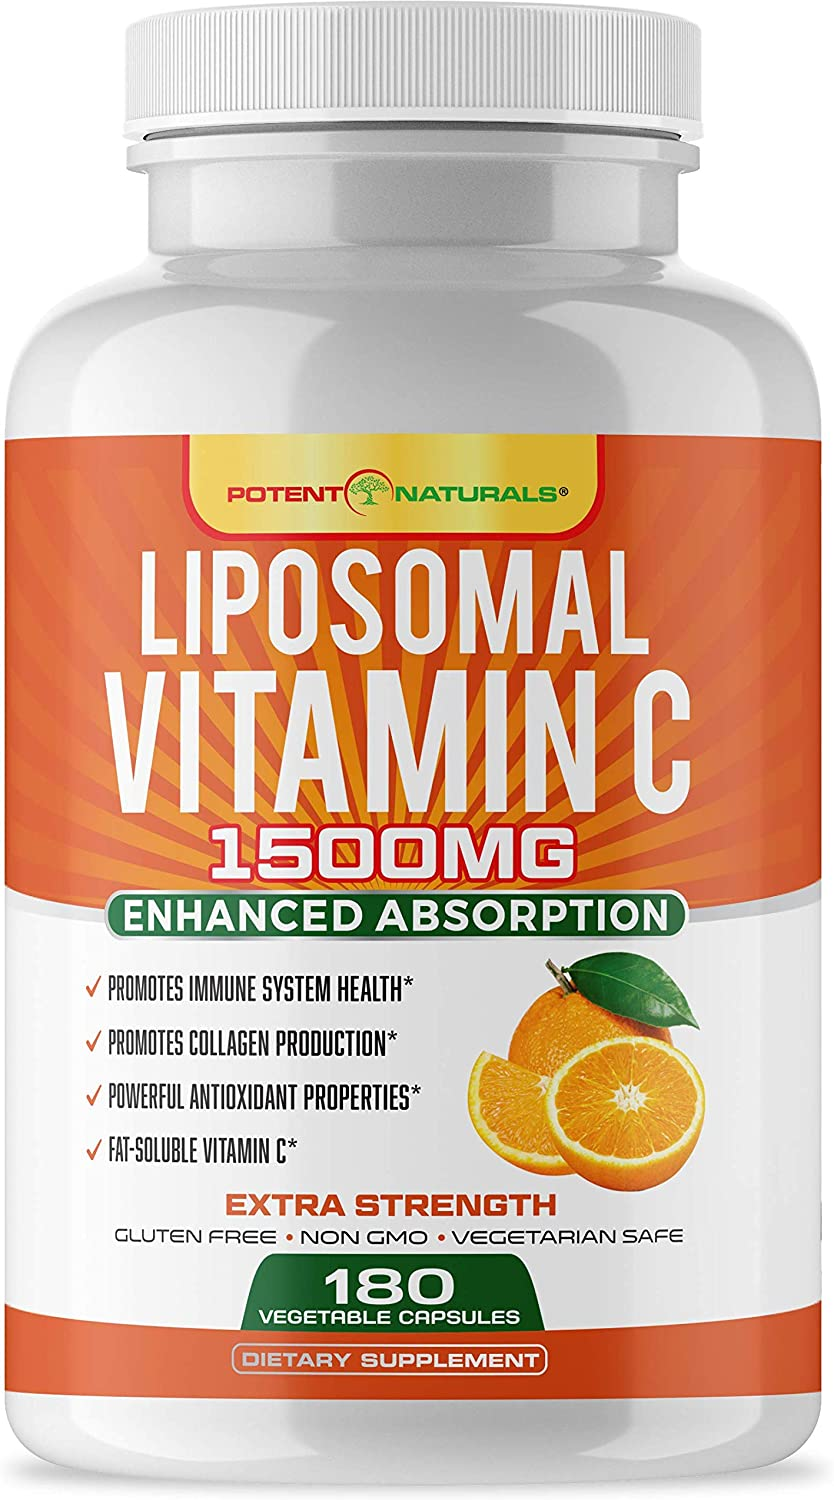 POTENT NATURALS Liposomal Vitamin C 1500mg 180 Vegan Capsules - Fat Soluble VIT C, High Absorption, Powerful Antioxidant & Immune Support, Collagen Booster, Anti-Aging Pills, Soy Free, Lypo spheric